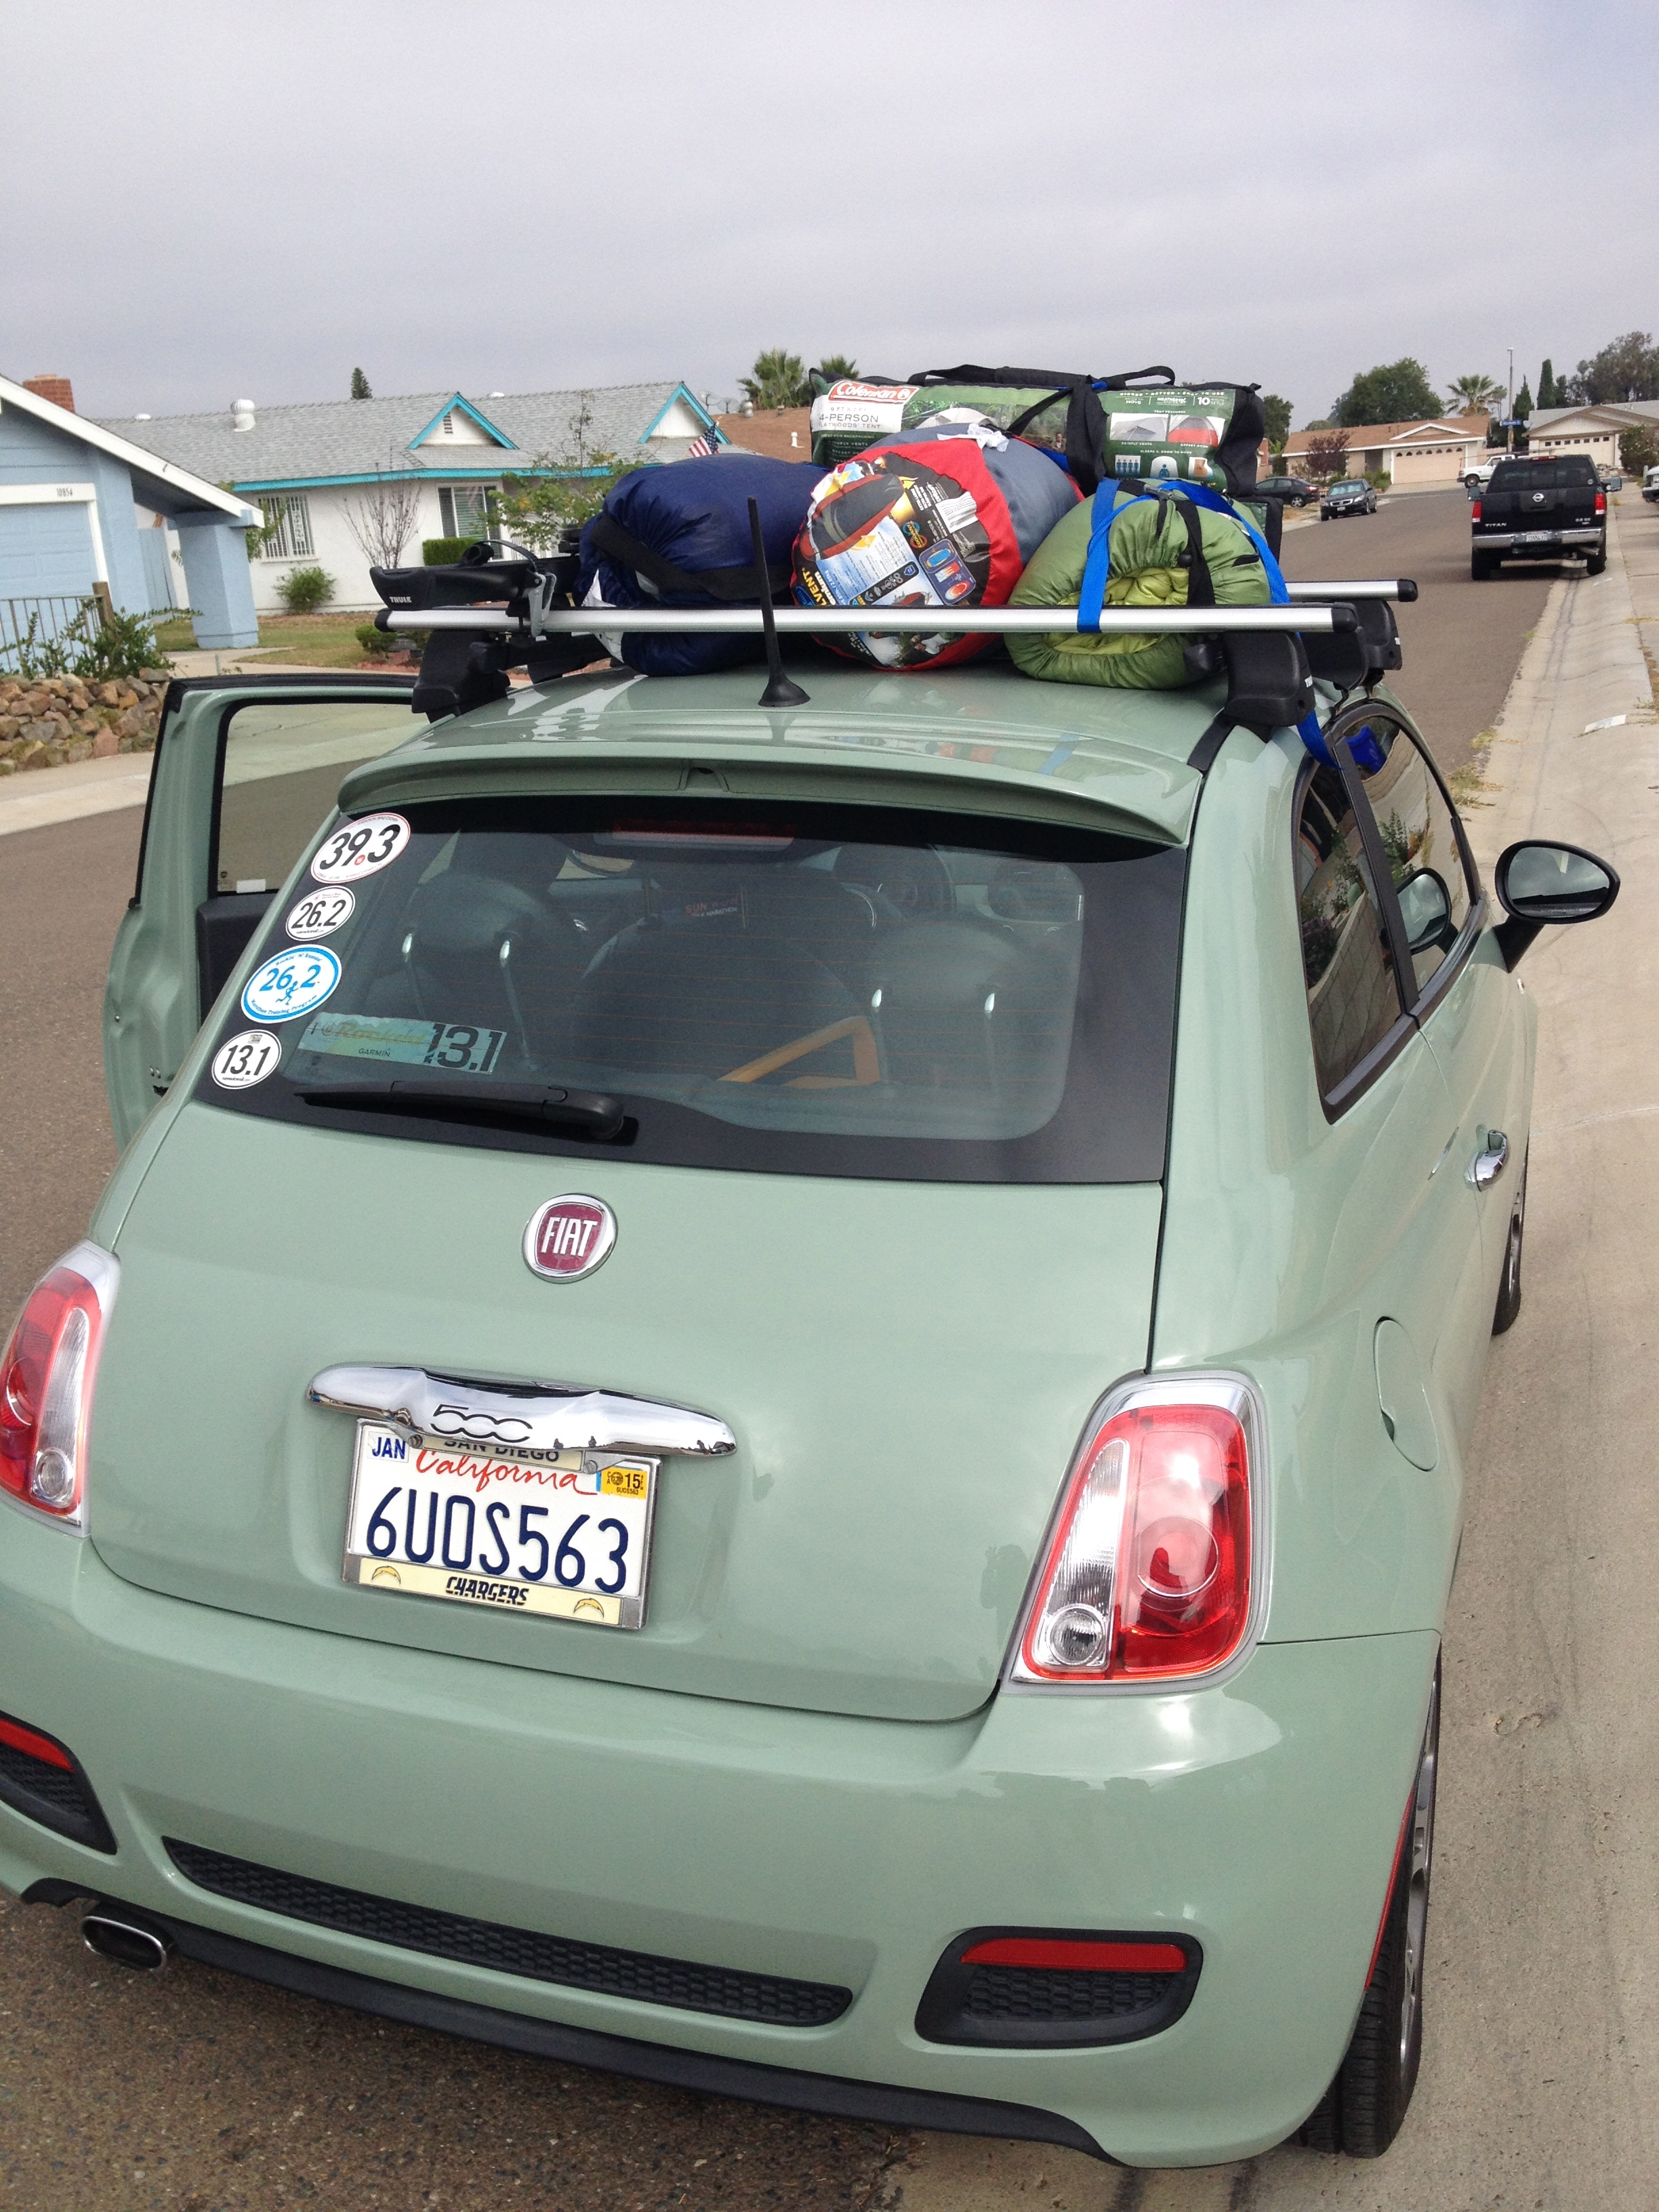 the lil FIAT that could. 4 women. 2 tents. 6 gallons of water. 4 bags, 4 sleeping bags. 1 cooler. this is not a joke.